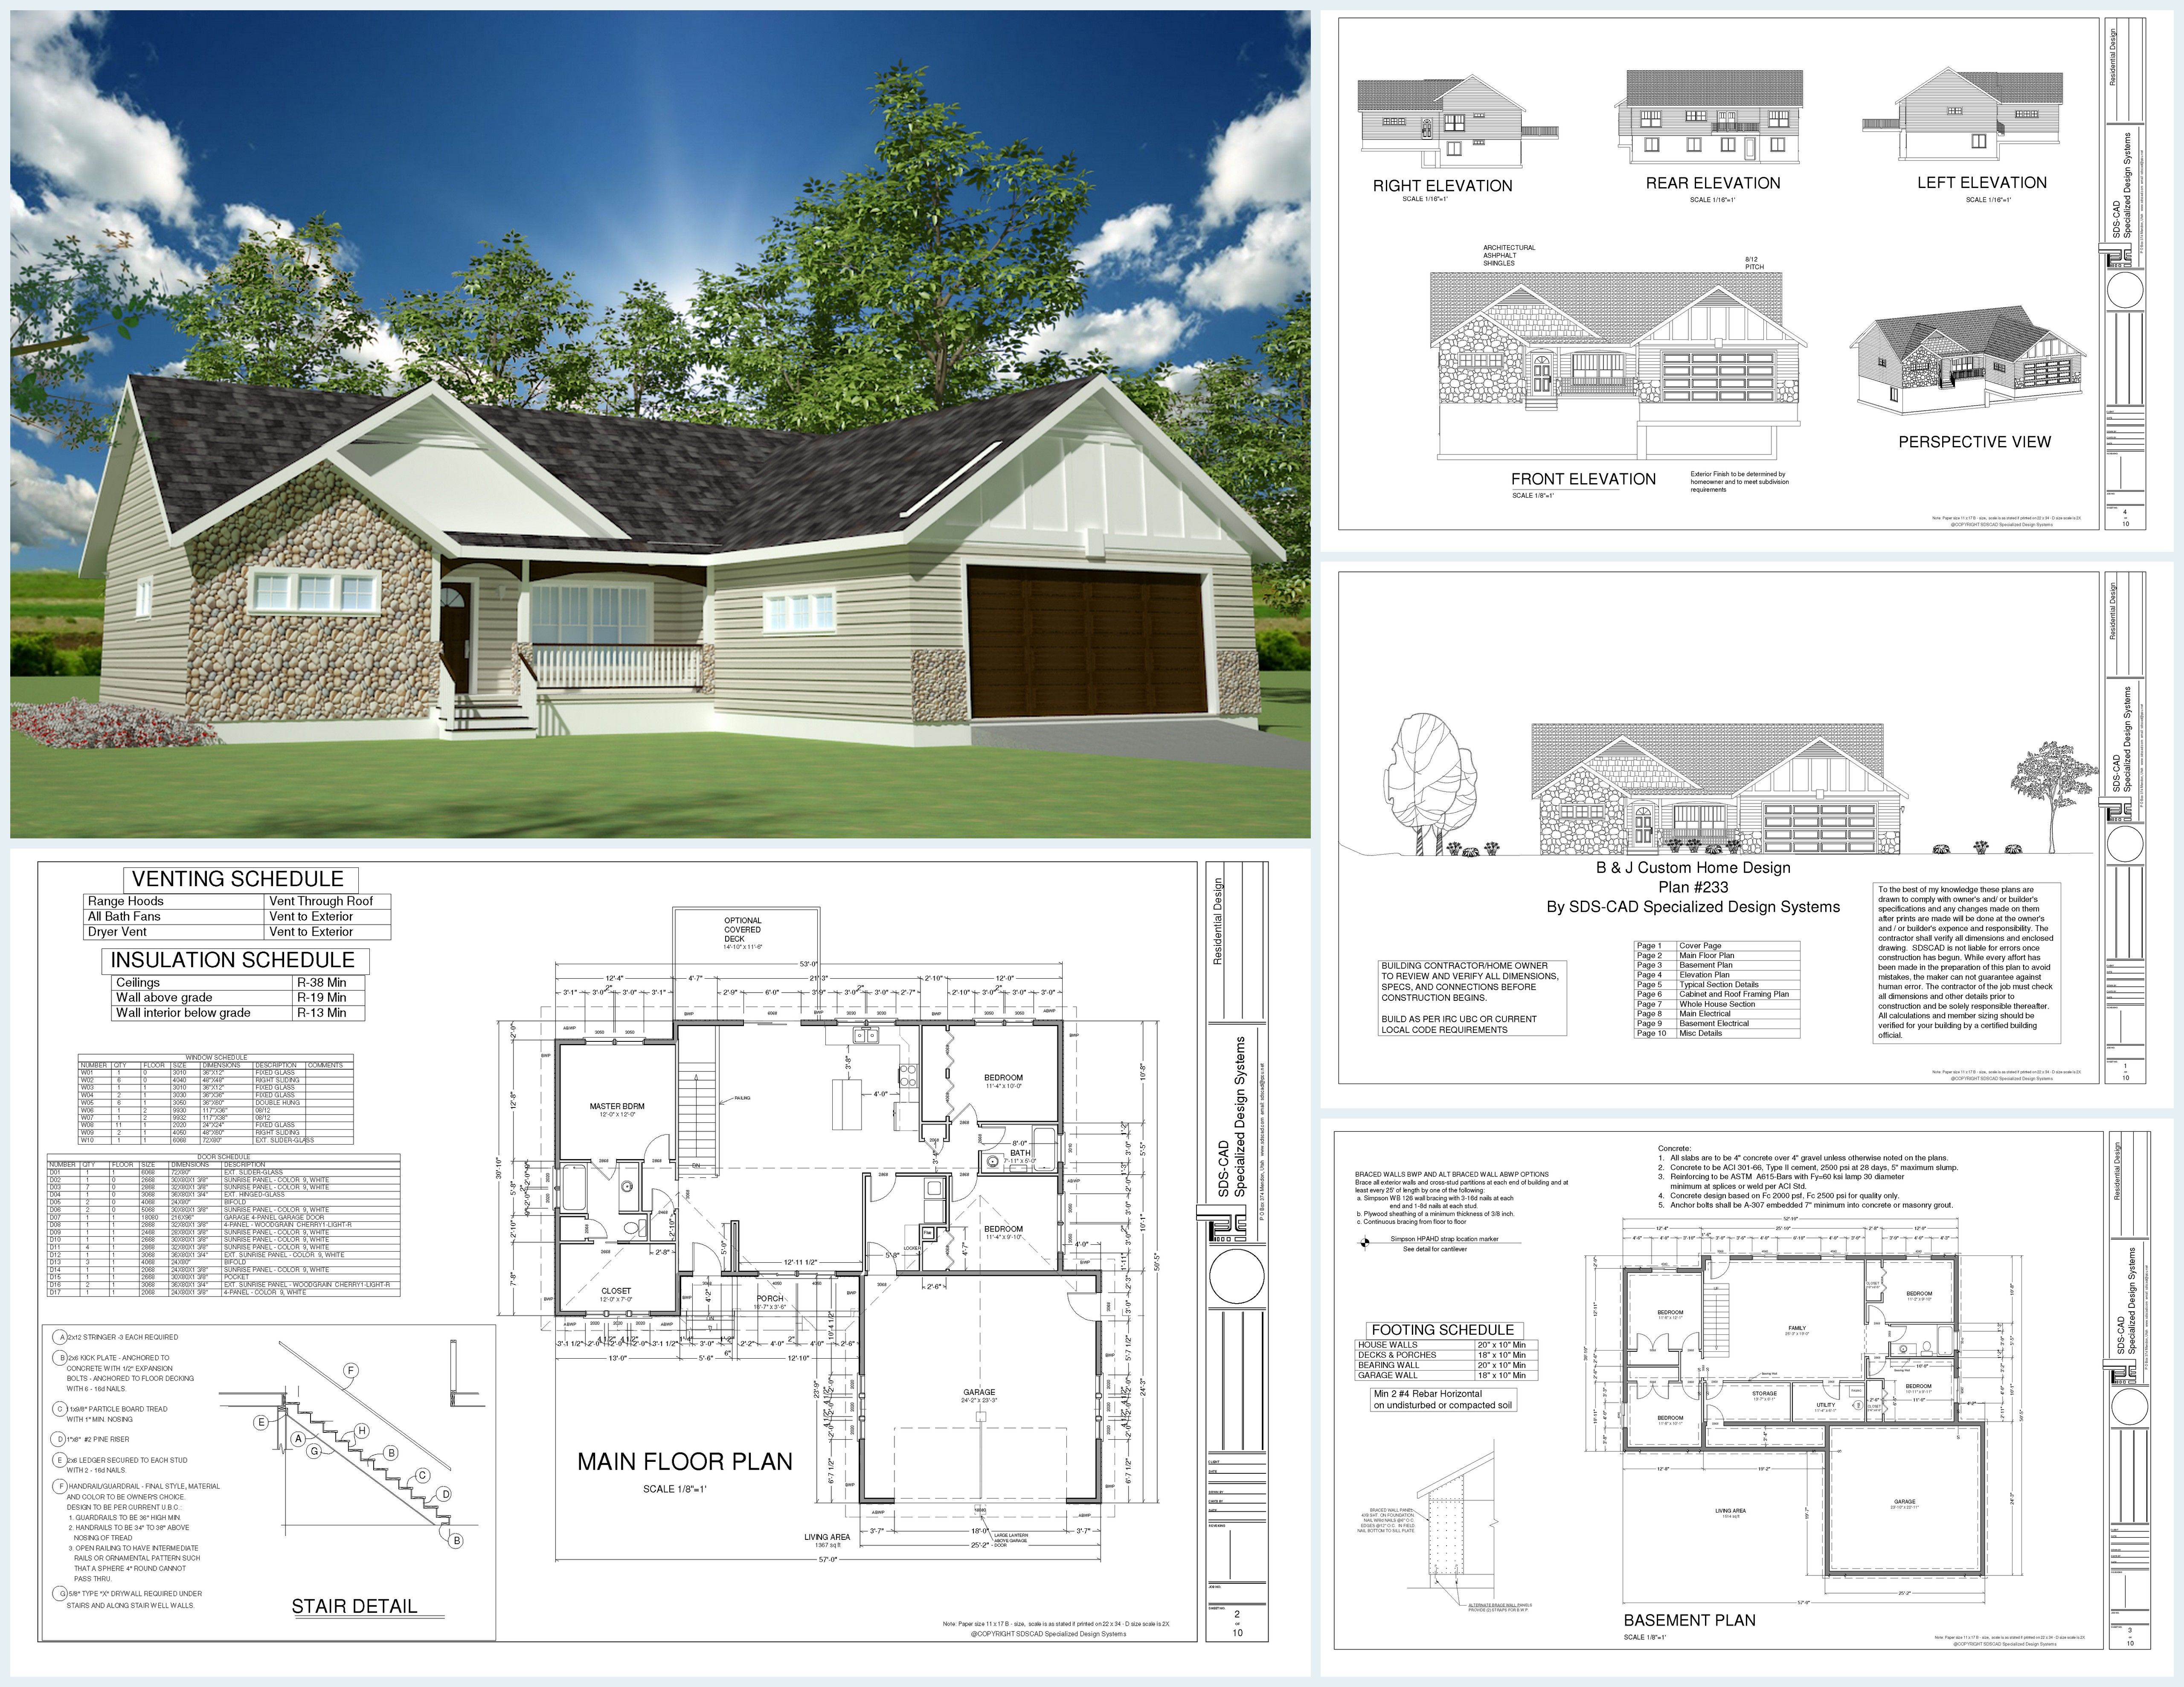 Amazing H233 1367 Sq Ft Custom Spec House Plans In Both PDF And DWG File Good Looking